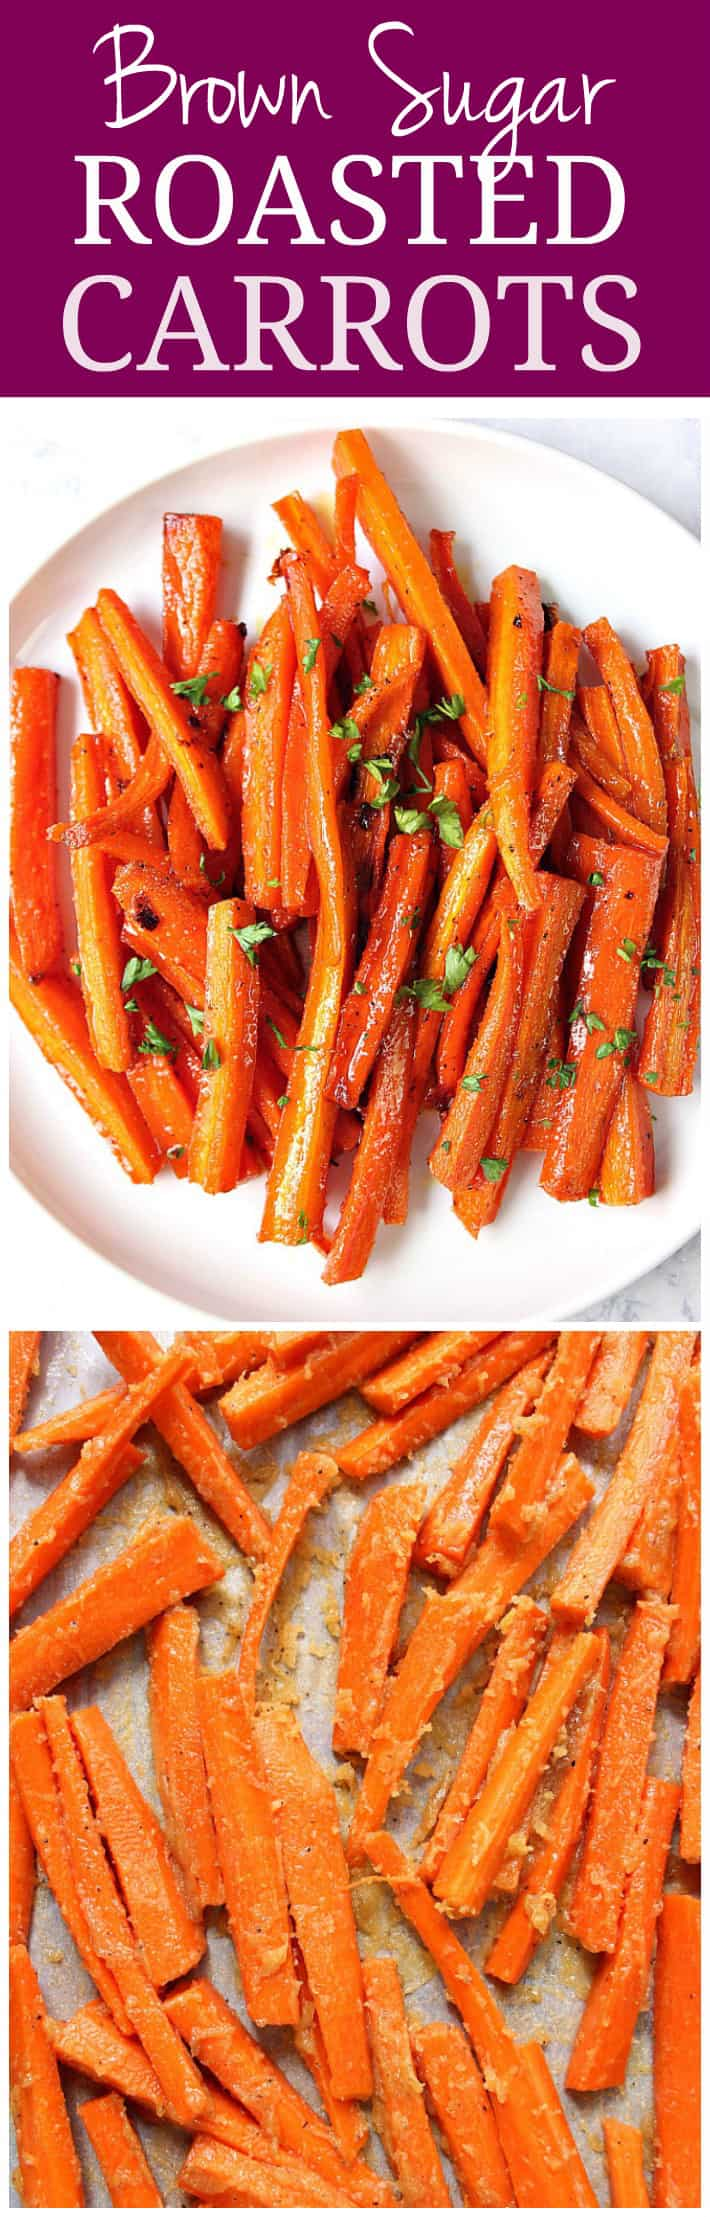 brown sugar roasted carrots recipe long1 Brown Sugar Roasted Carrots Recipe